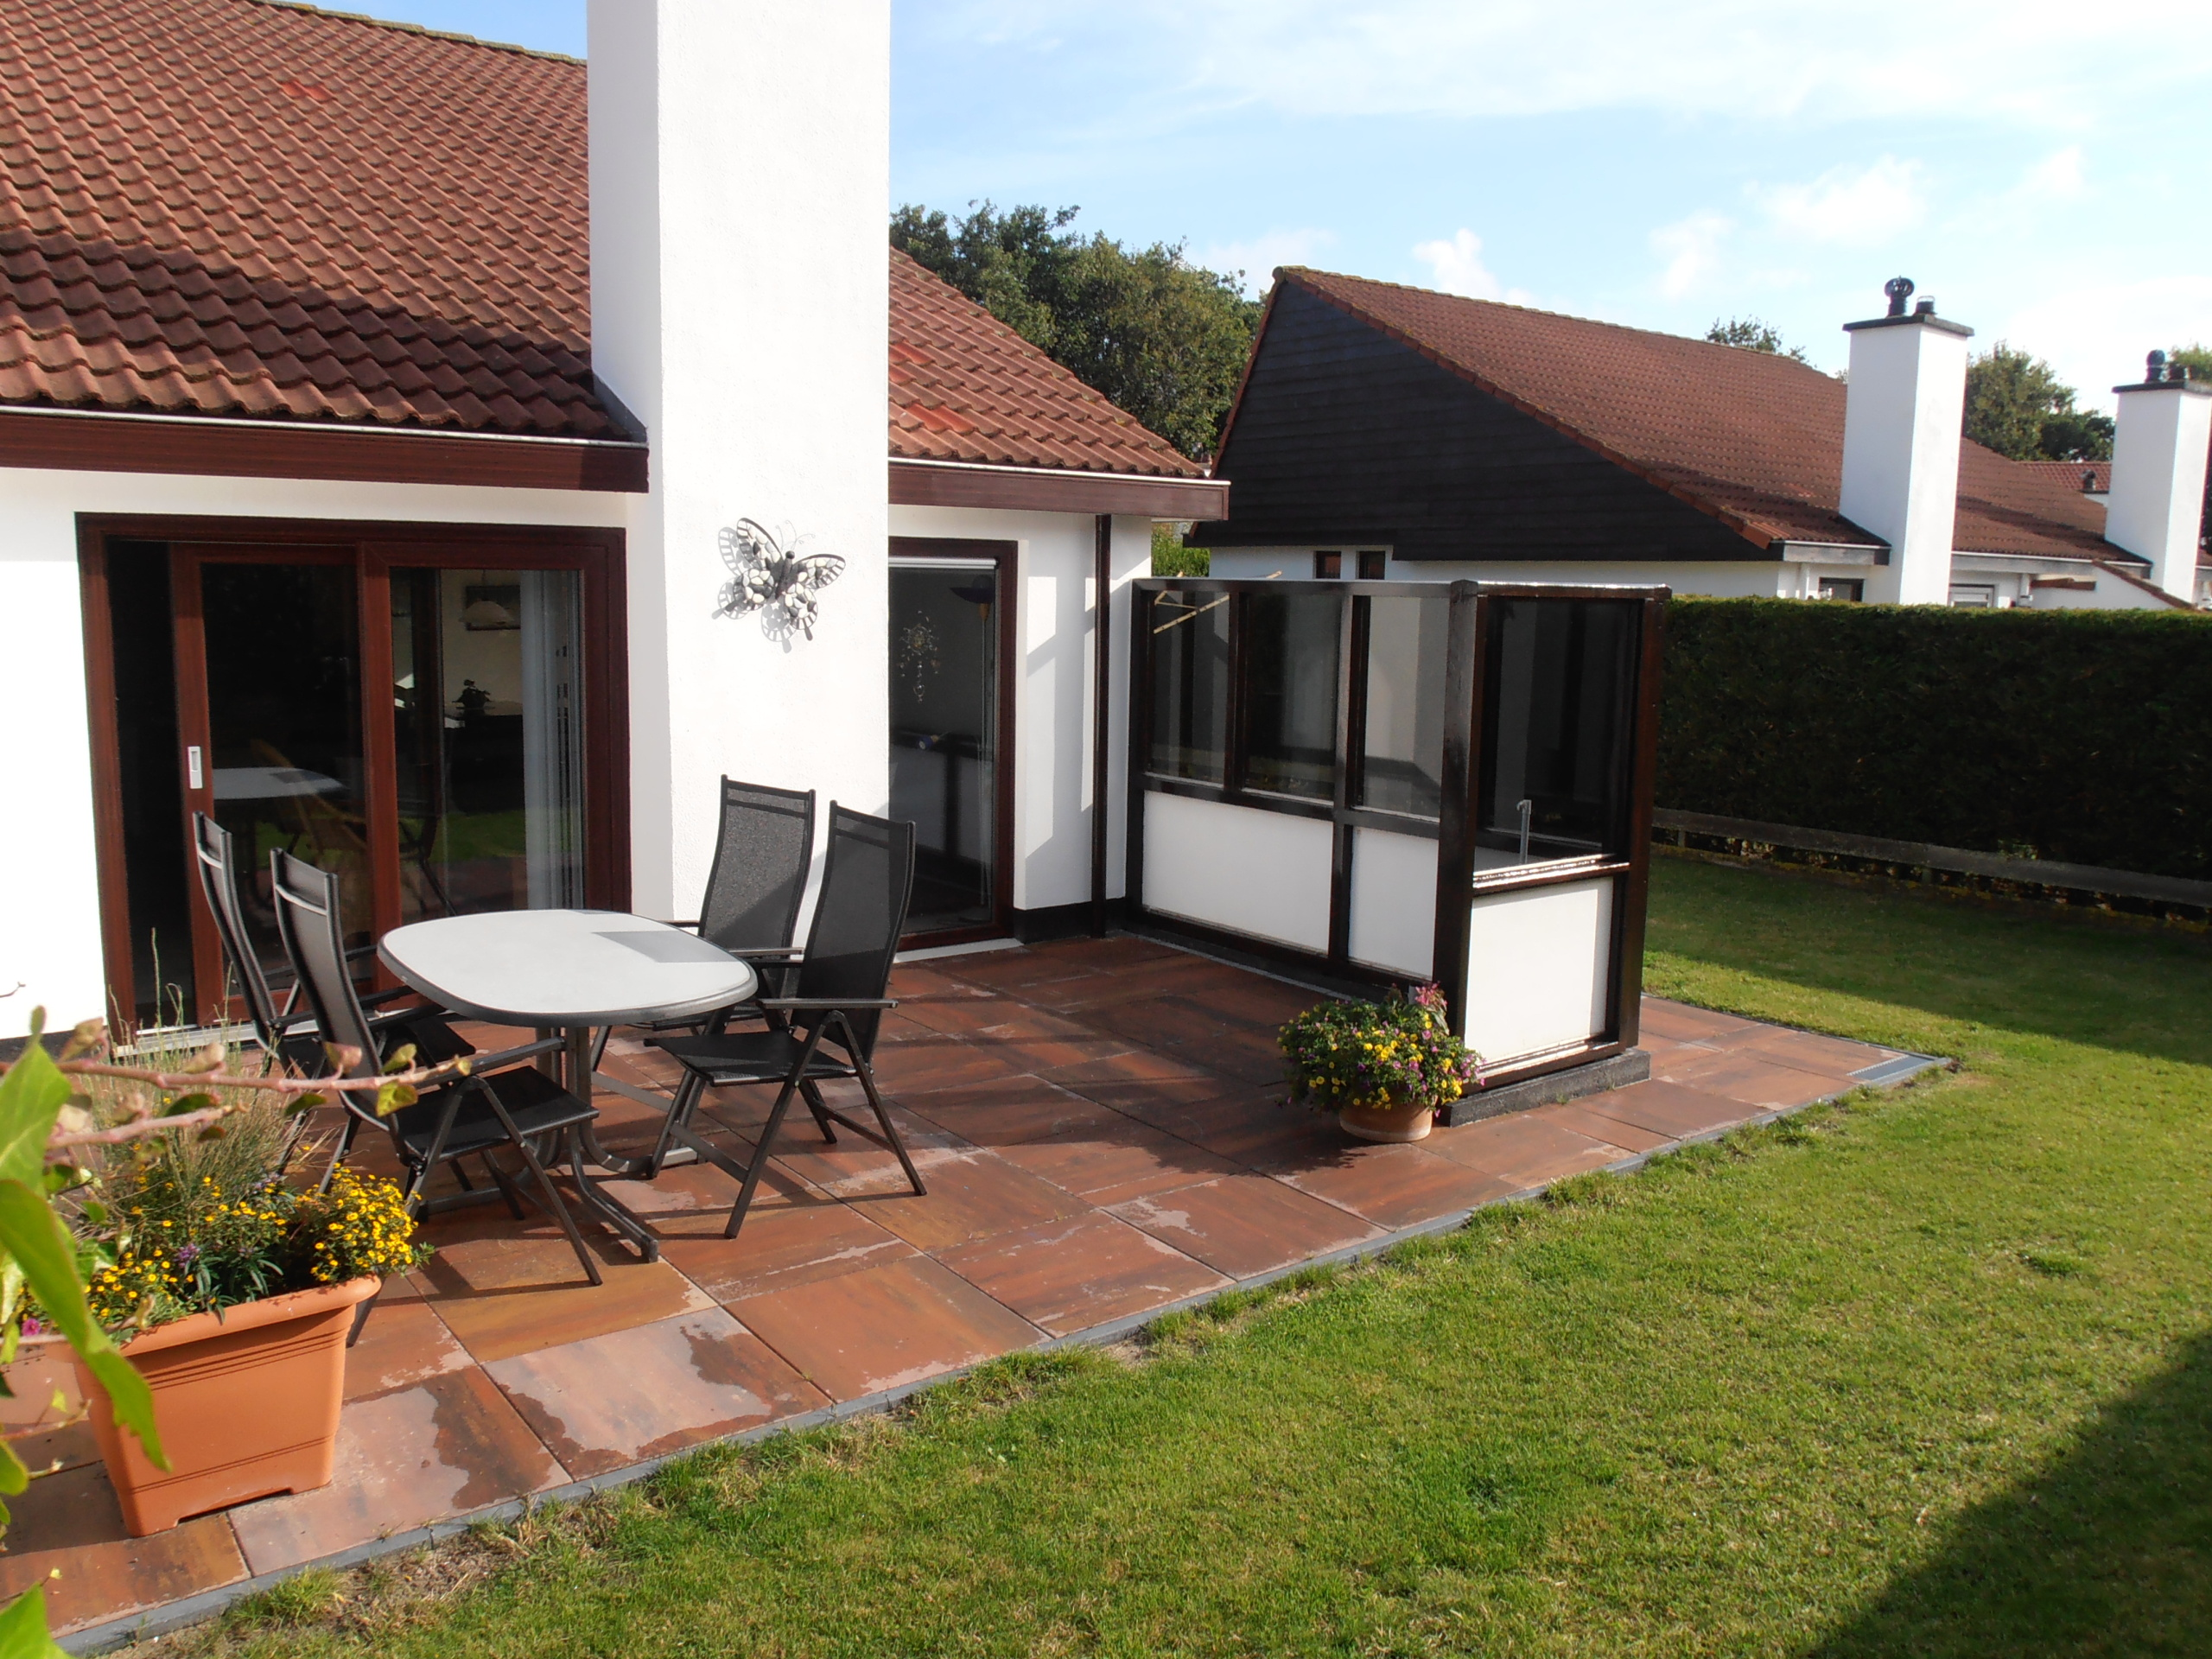 Ideally located holiday home with a spacious garden in forest De Dennen